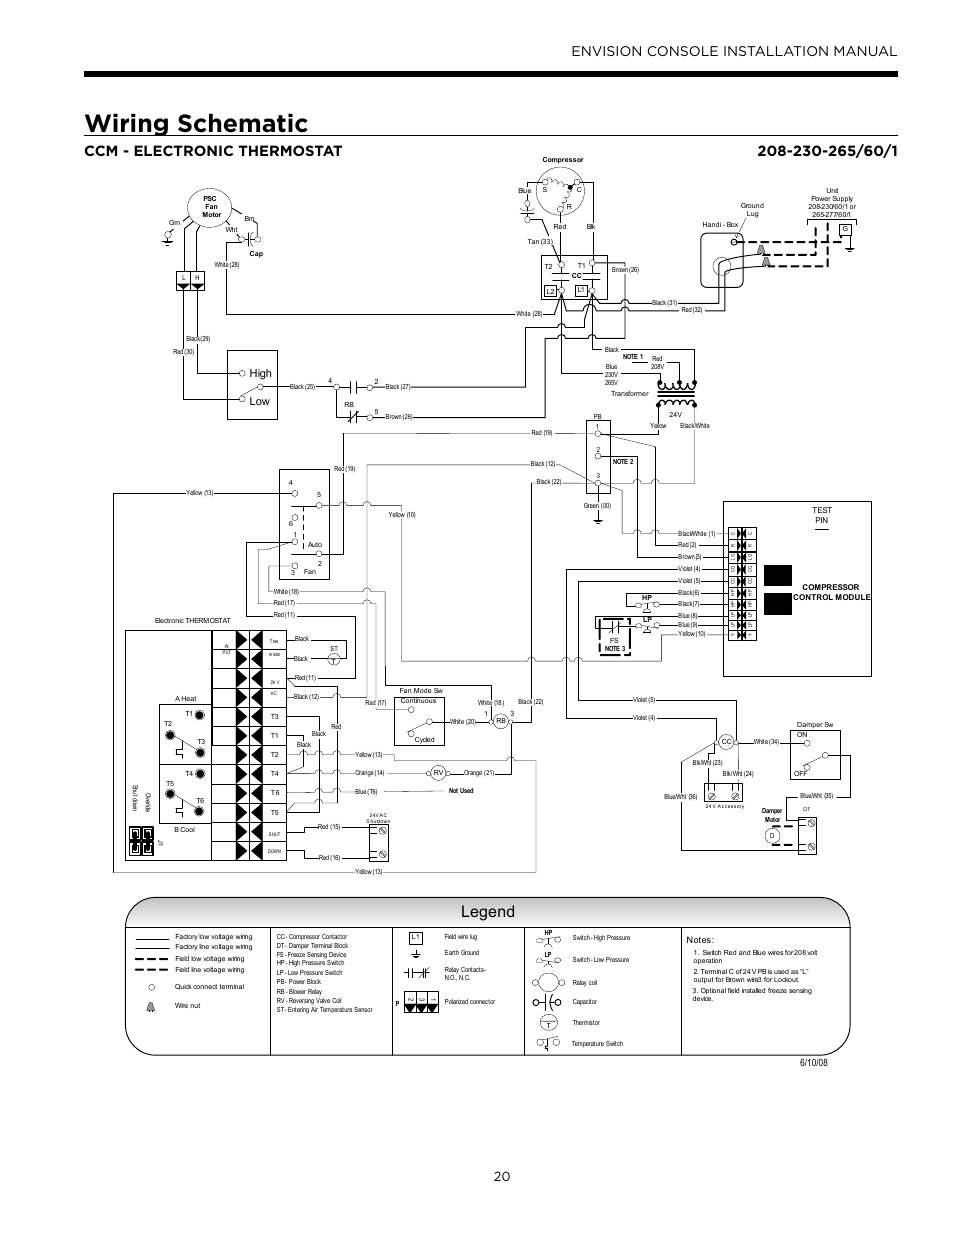 Water Furnace Wiring Diagrams Schematic Legend Envision Console Installation Manual Old Diagram